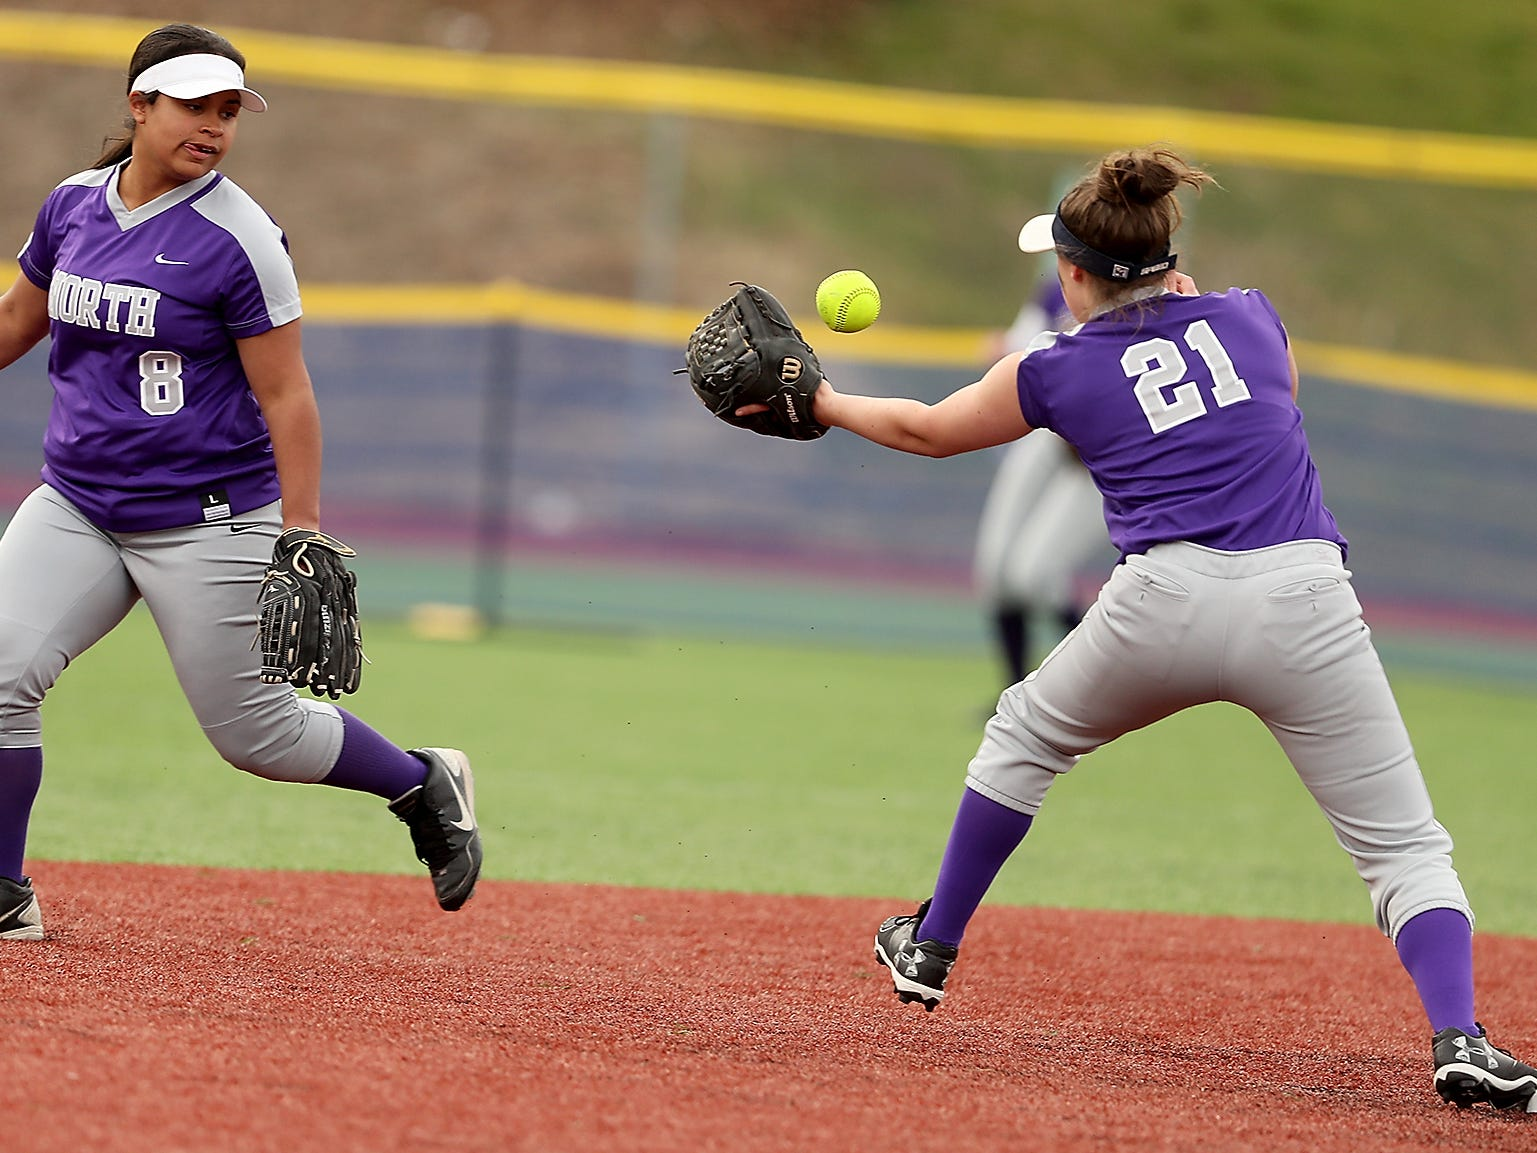 North Kitsap's Alicia Goetz (8) lobs the ball to Iyreland Lawson (21) for an out at second against Olympic at Gene Lobe Field on Wednesday, March 27, 2019.